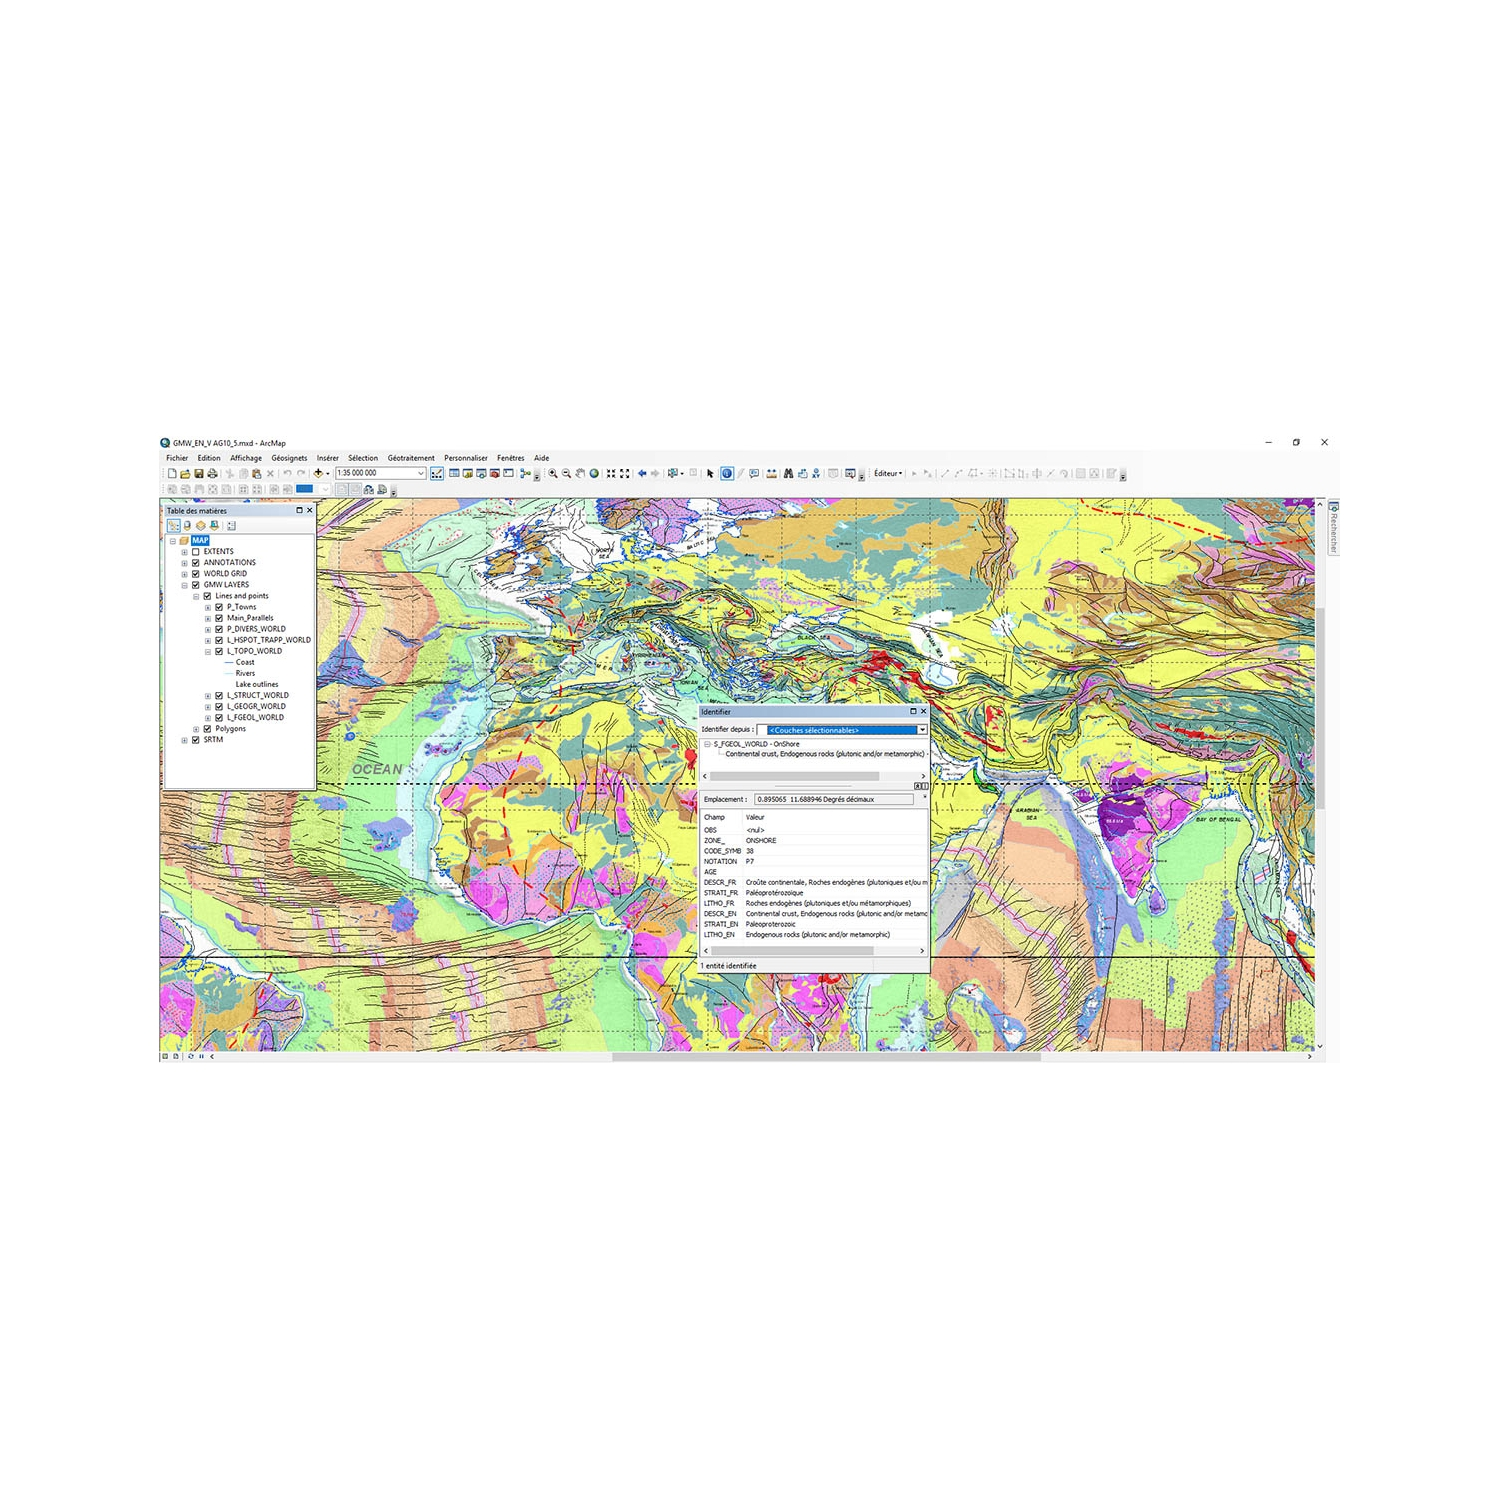 GIS Database of the Geological Map of the World at 1/35 000 ... on map data, map projection, map art, map world, map print, map design, map services, map history, map of ur and uruk, map book, map of mobile, map drawing, map games, map of asean countries, map language, map java, map web, map of afghanistan and pakistan, map project,